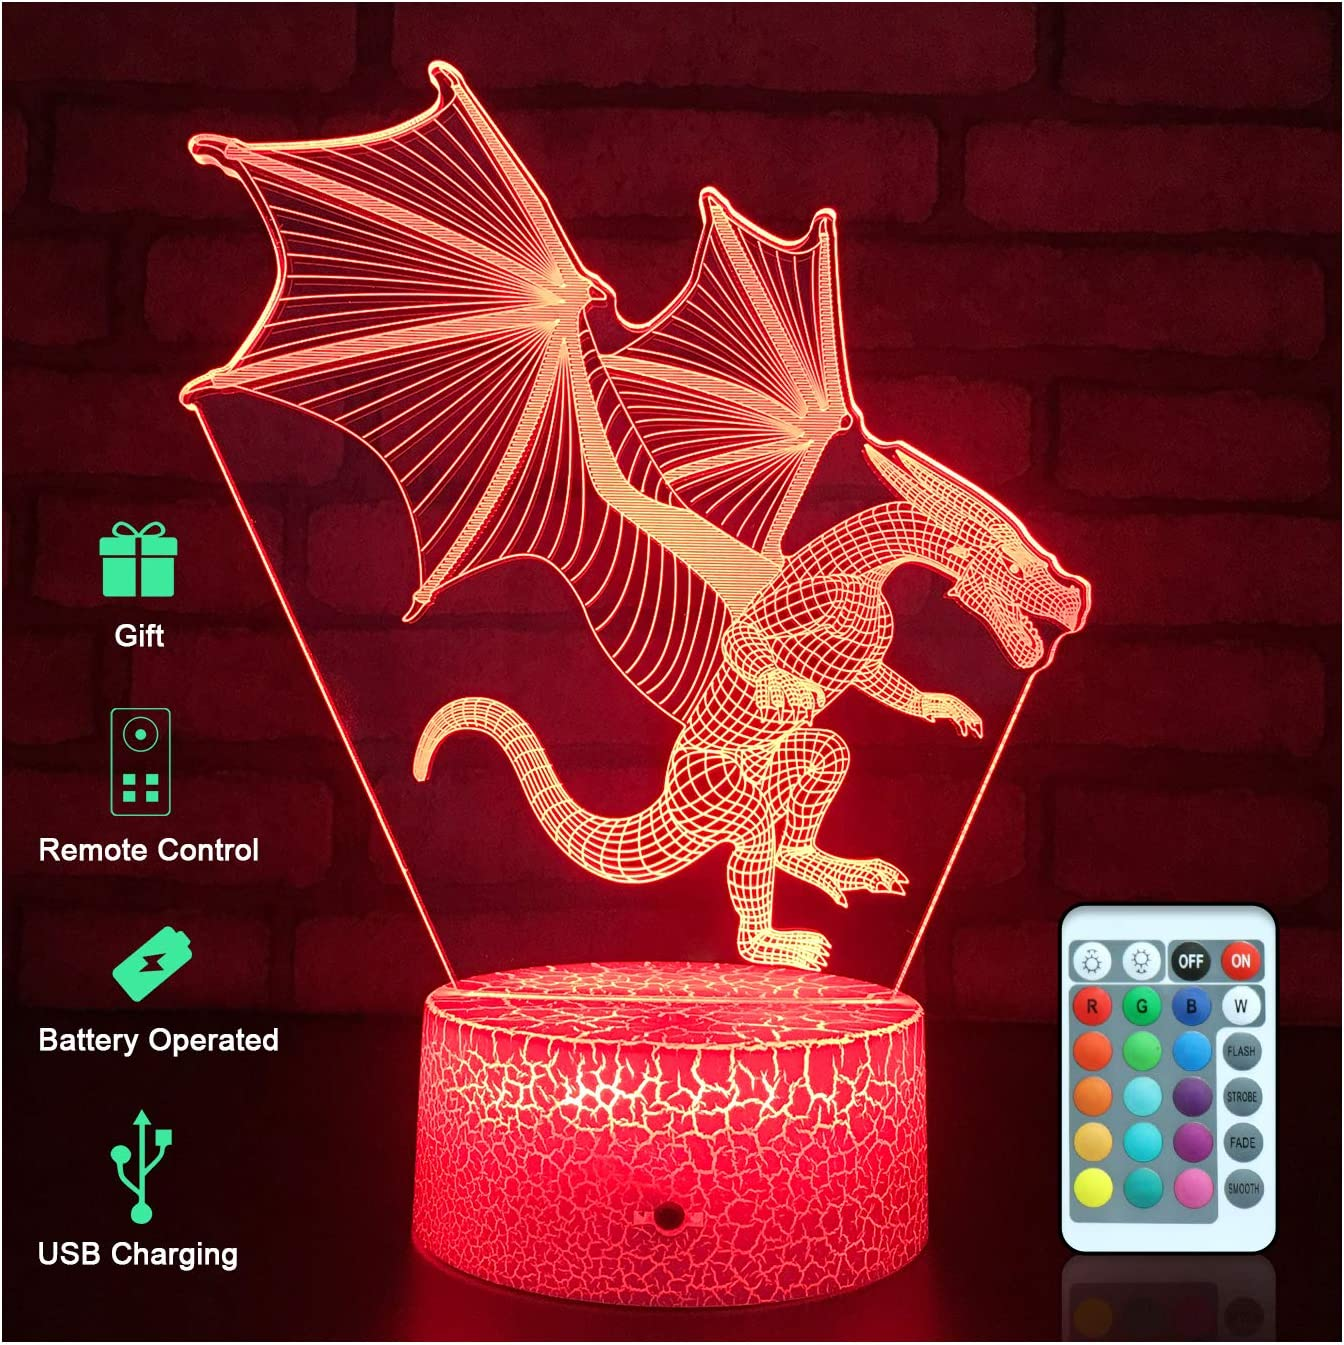 DC The Flash 3D Optical Illusion Night Light Lamp Gift for Christmas